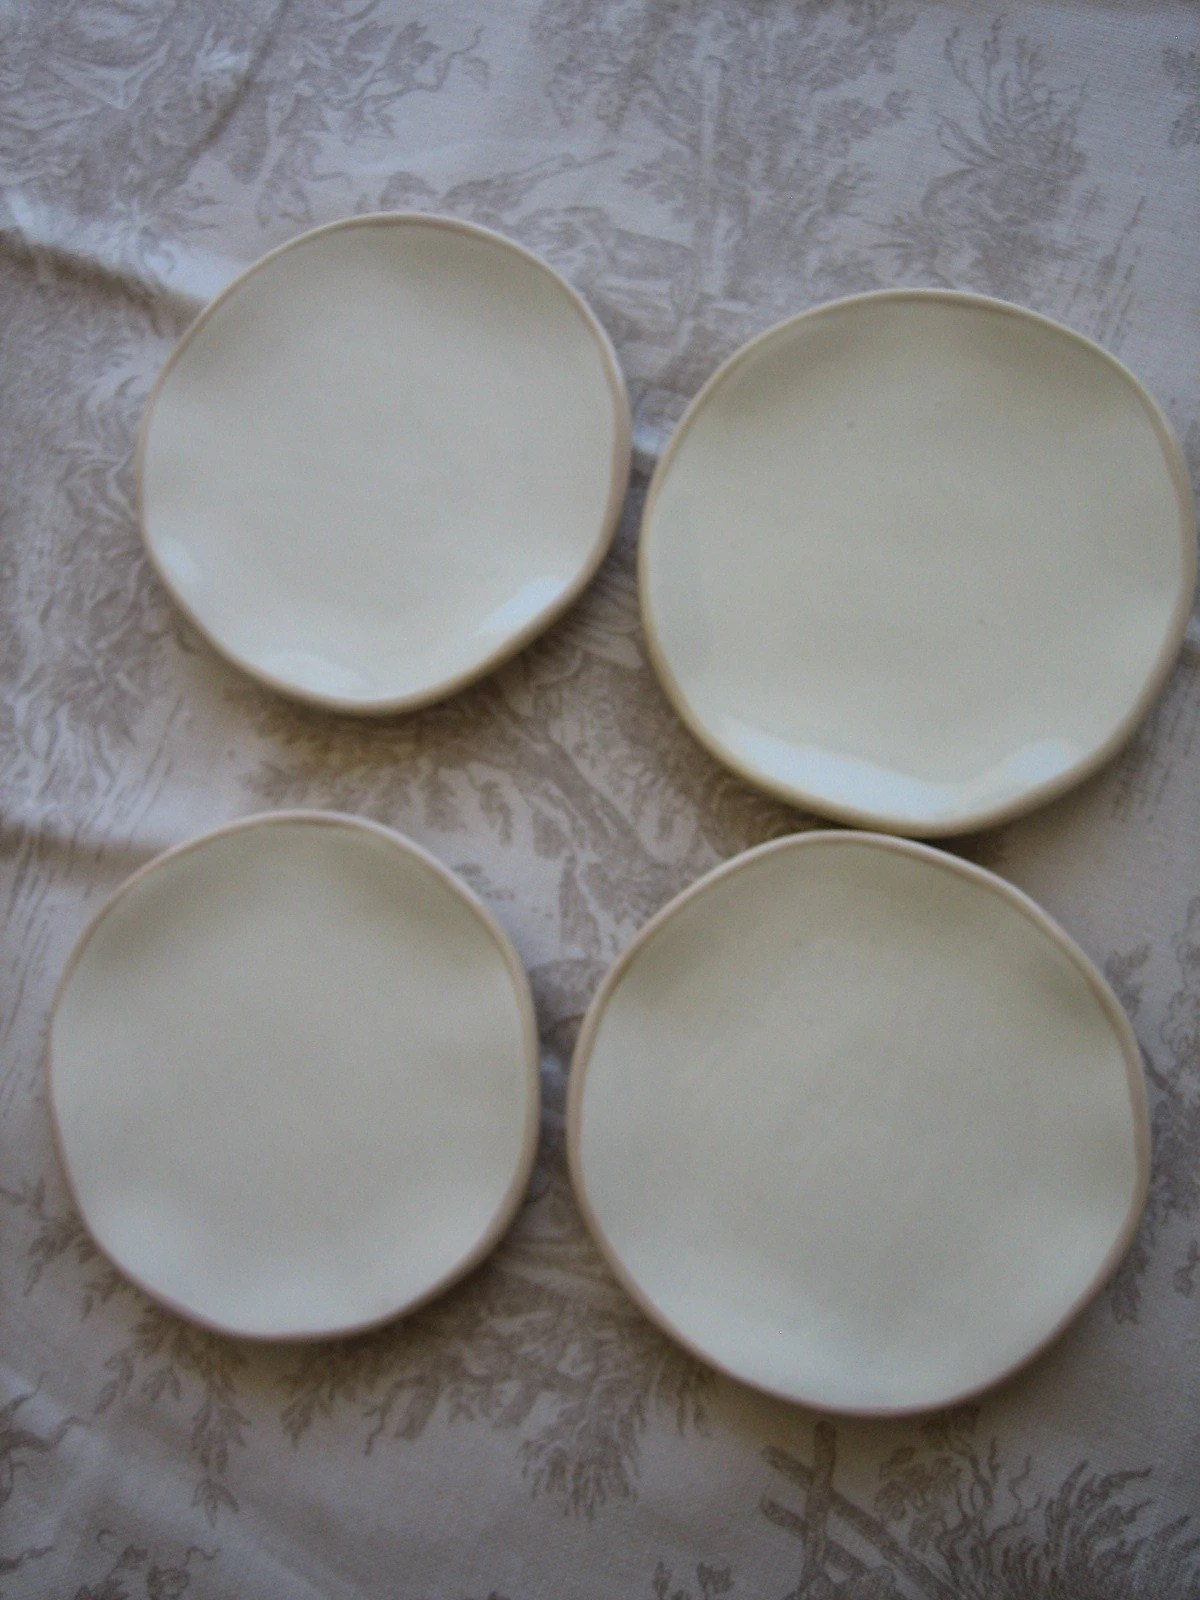 Set of Four Appetizer Plates from the JunkMarket